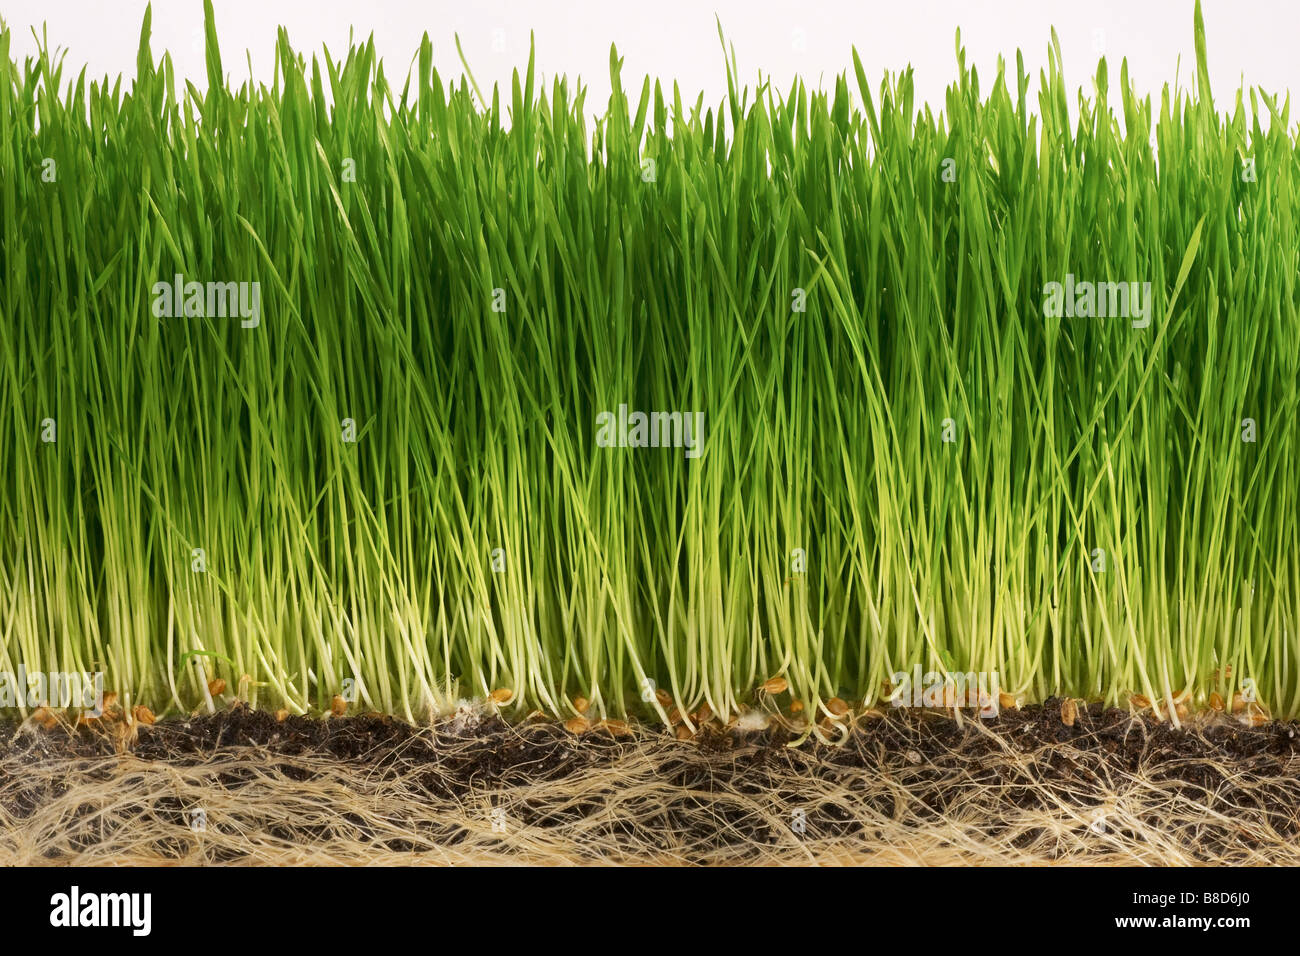 Grass  Roots - Stock Image